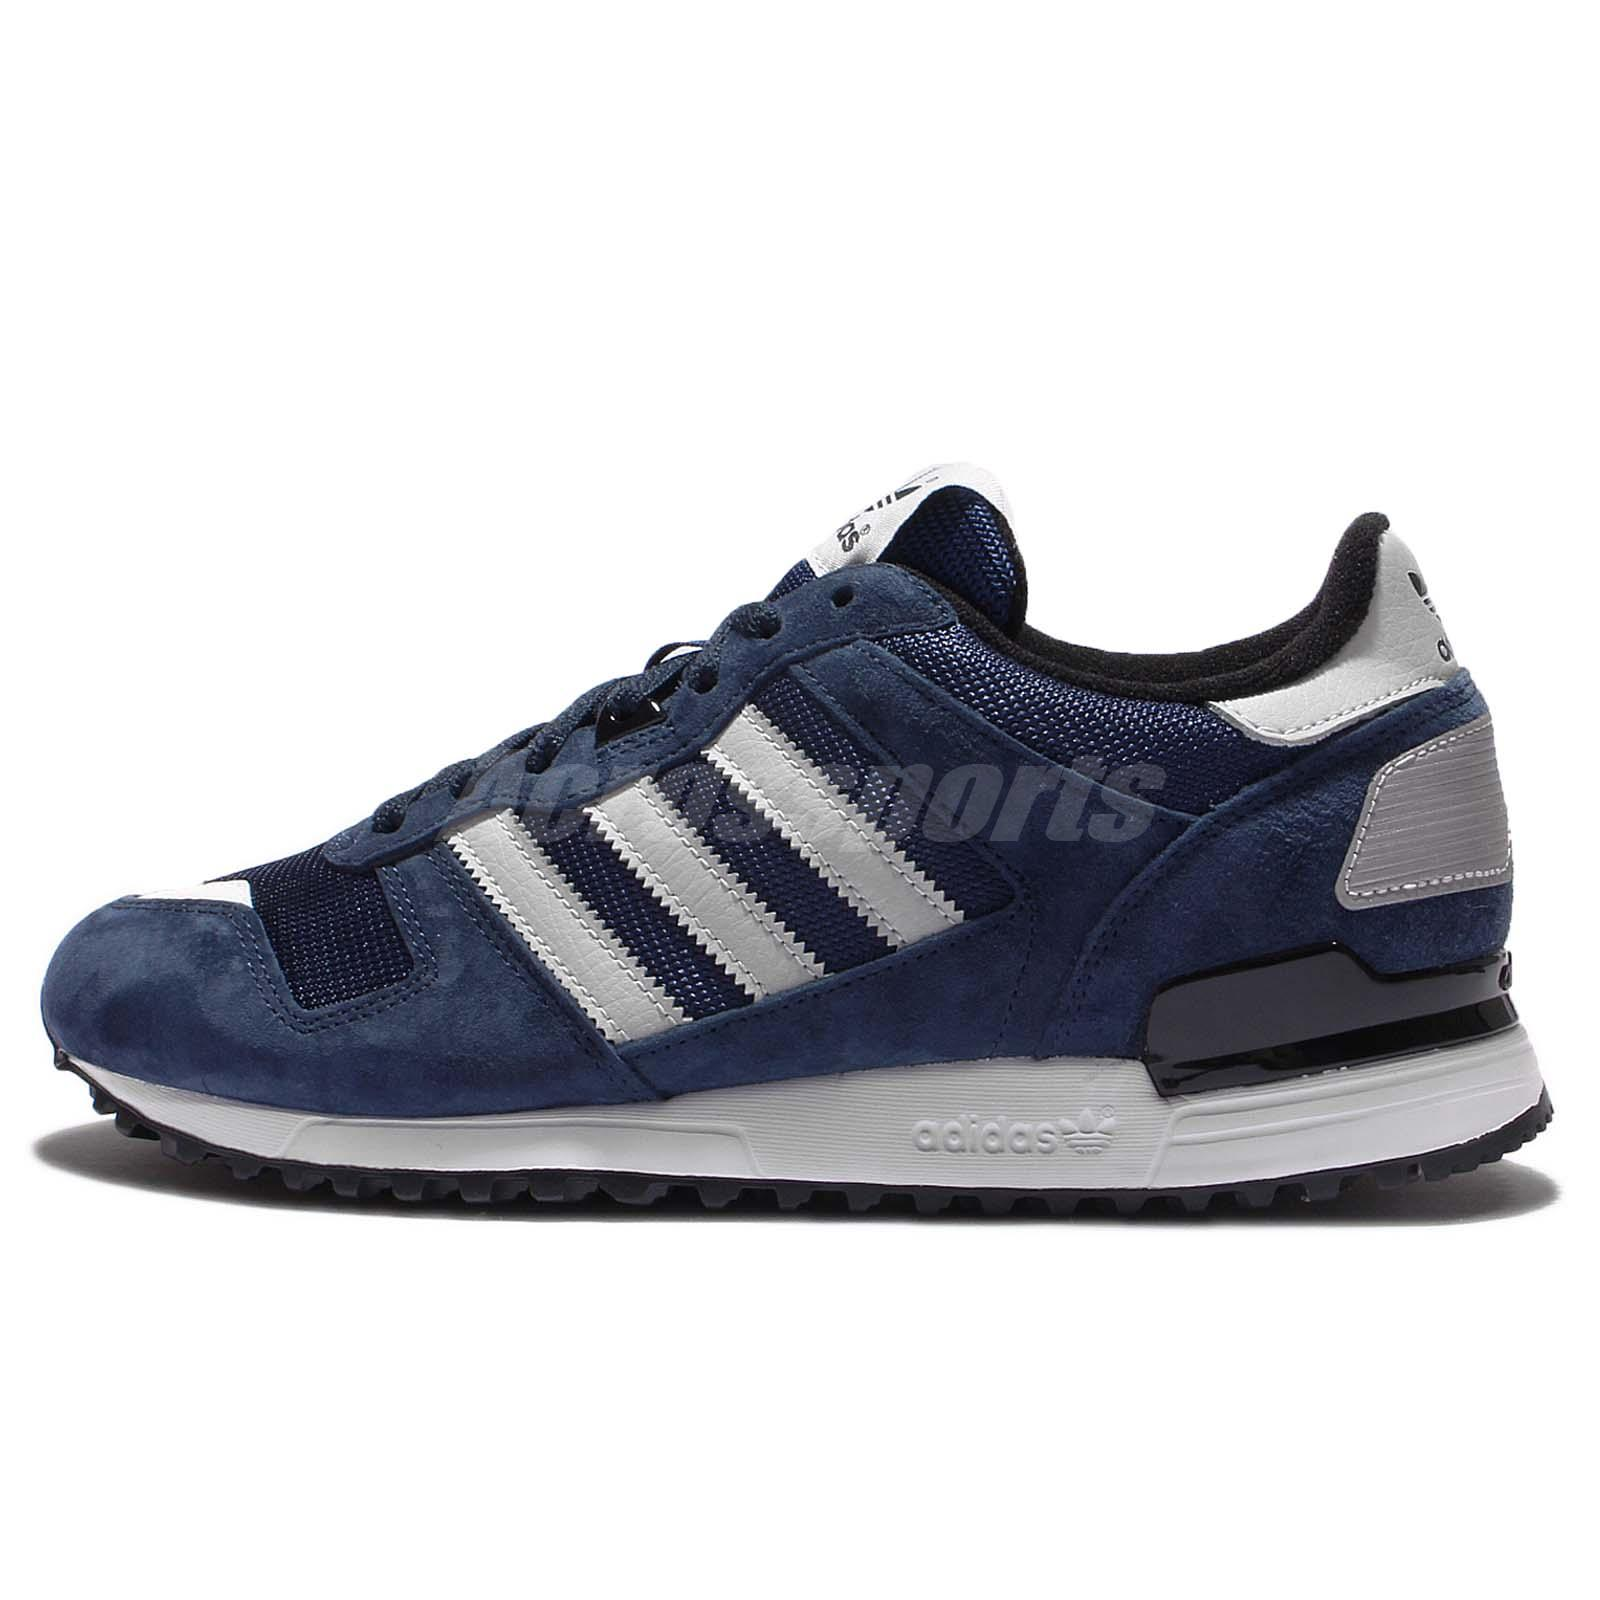 09323a0e4 More pictures Size Chart adidas Originals ZX 700 Navy White Grey Men  Running Trainers Sneakers S79182 ...